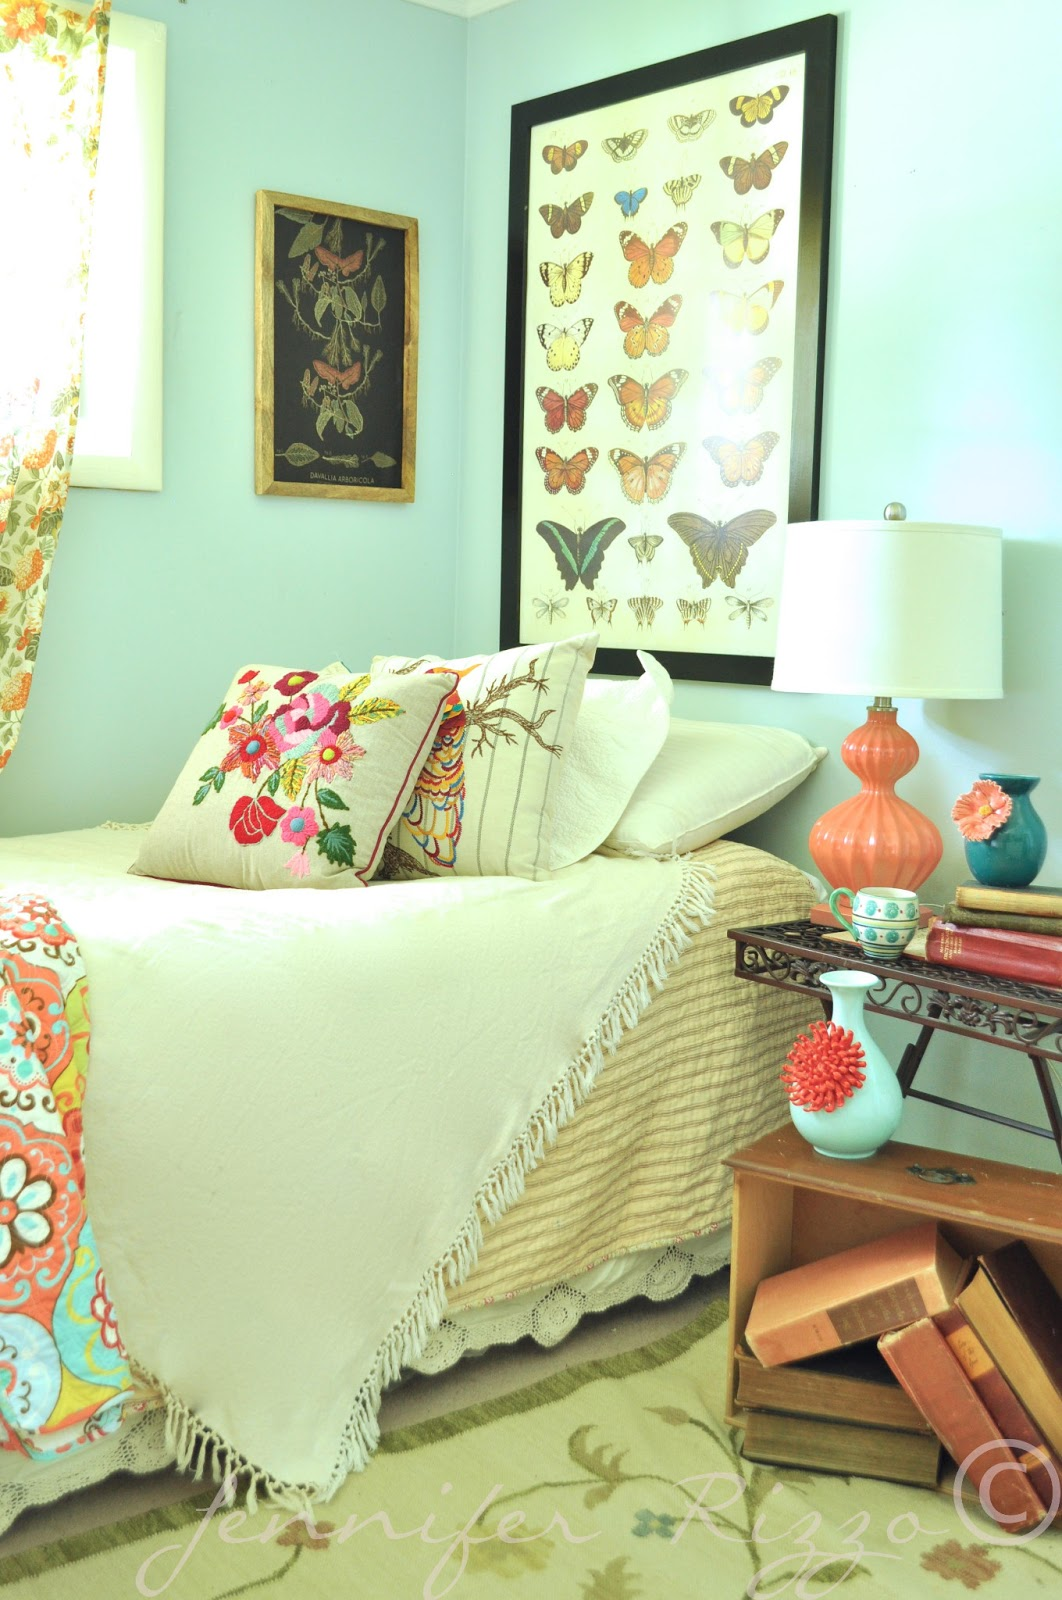 A Modern Bohemian room ....One Room, Three different ways ... on Modern Boho Decor  id=57451